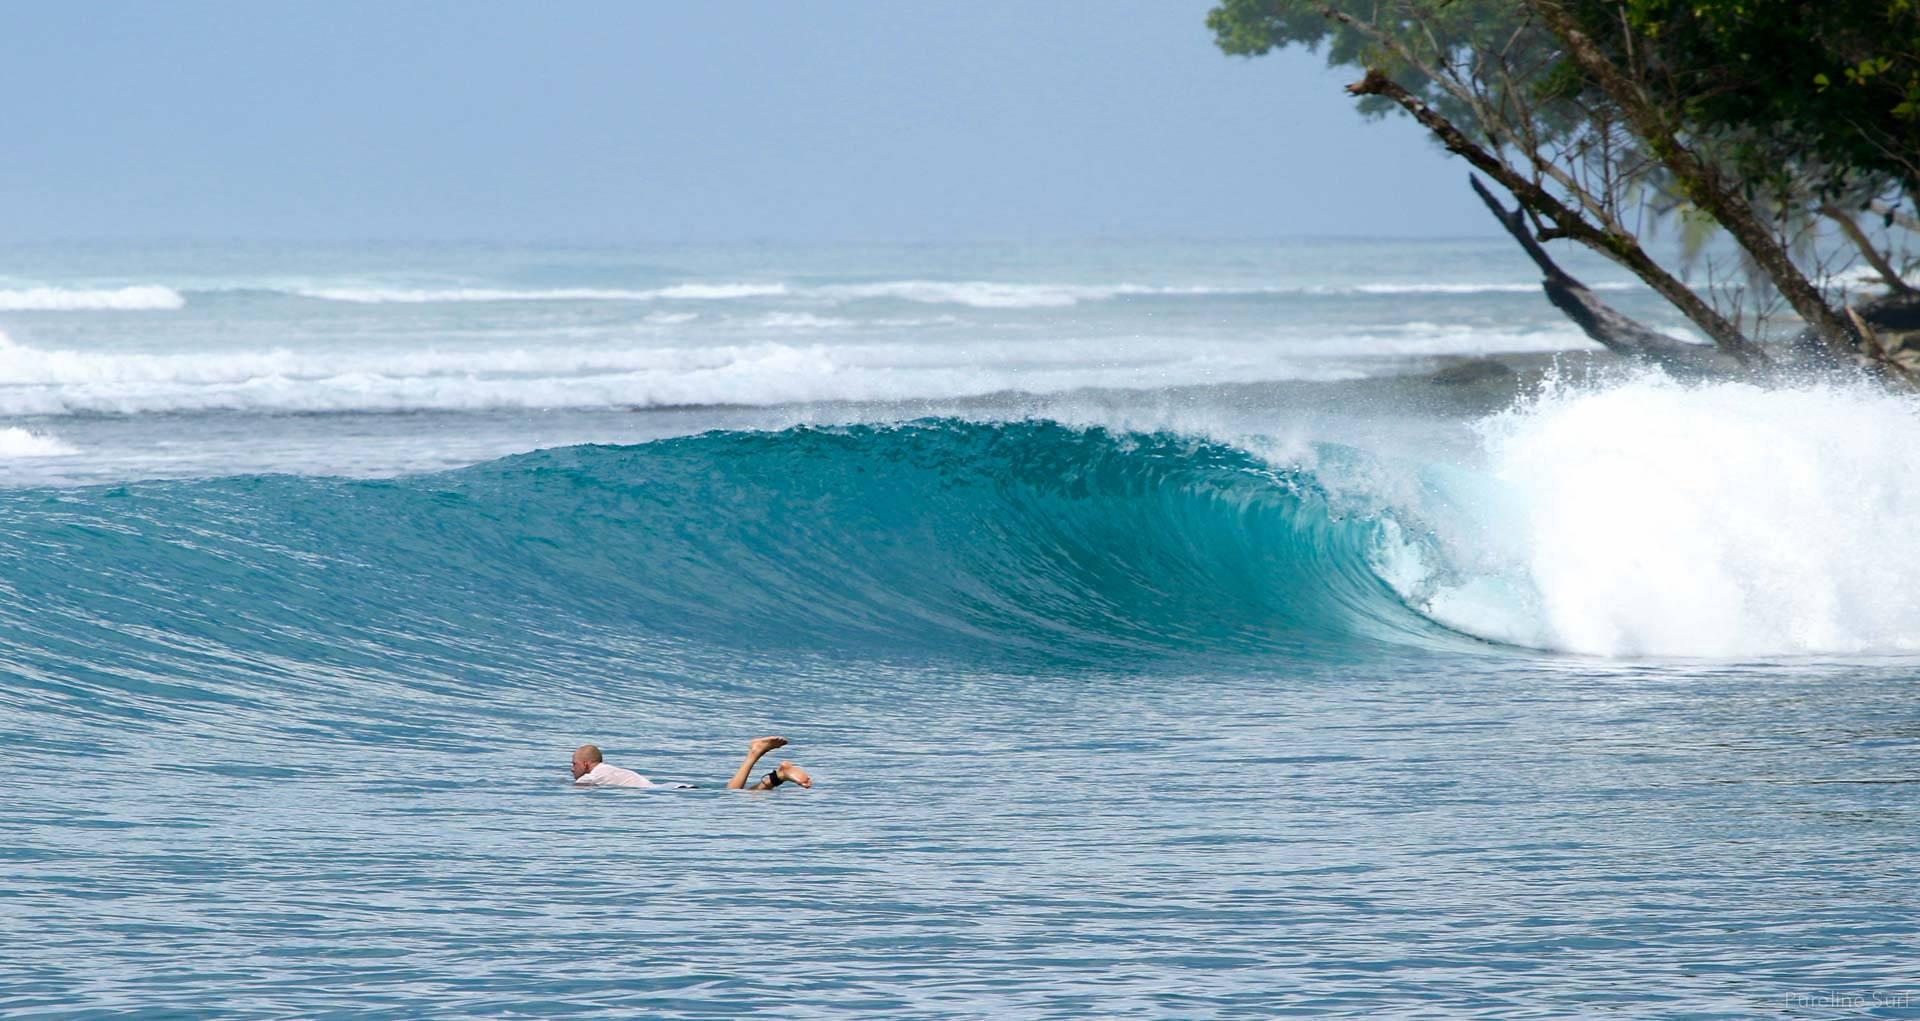 Another wave goes by without a rider. Our coaching style at Pureline Surf wants to make sure we respect the line up in any location.